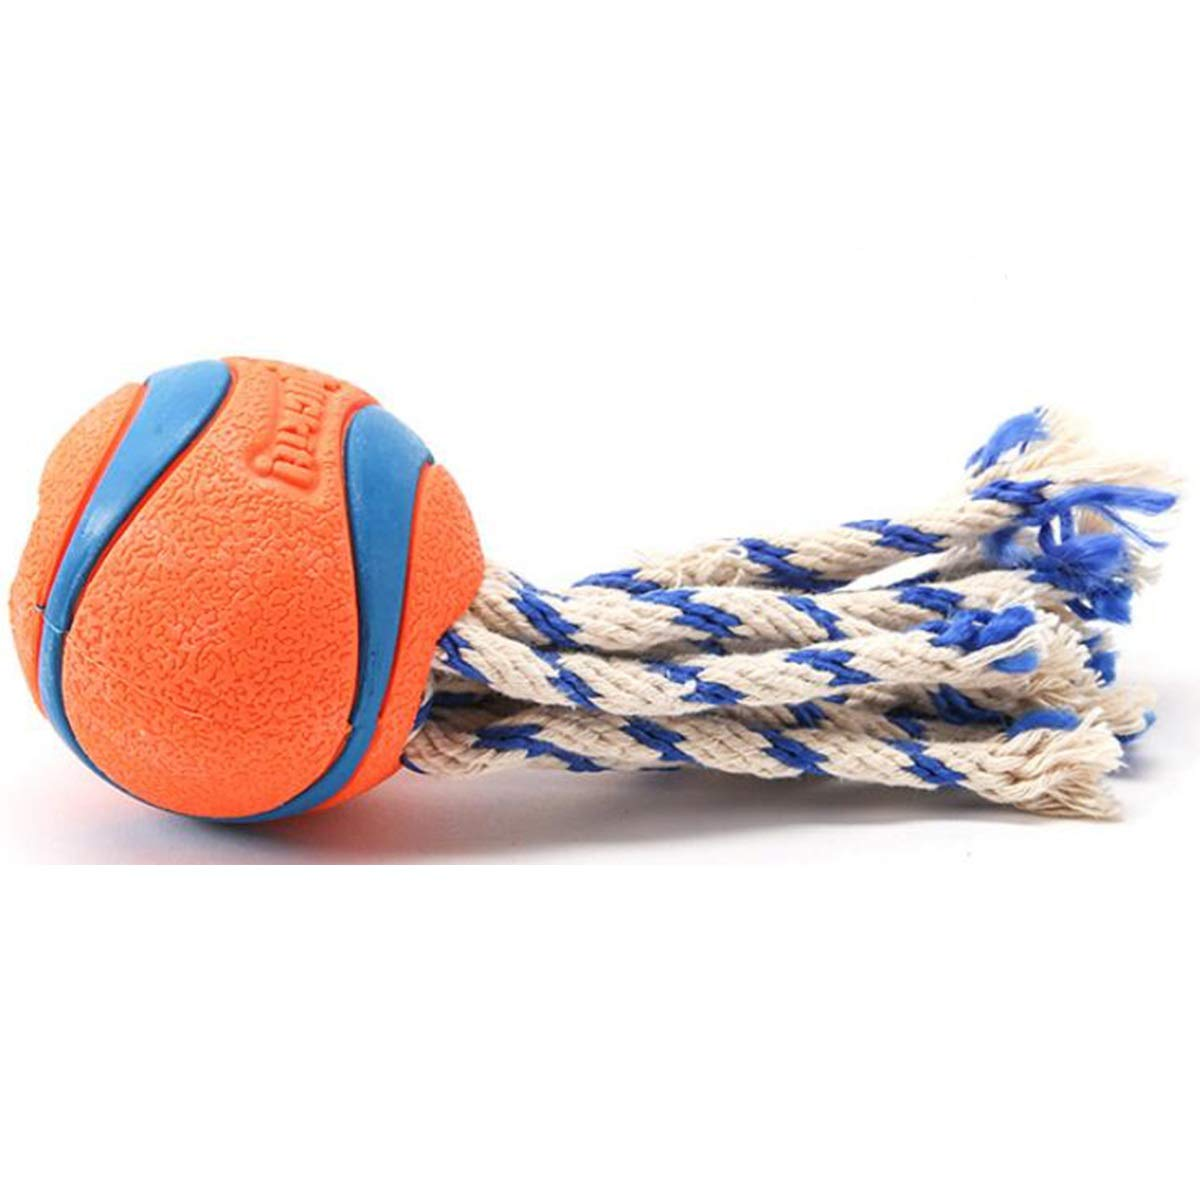 orange Xingganglengyin Pet Toys, pet Molar Toys, Ball Molar Toys, Medium Rope Knot Rubber Bouncy Balls, Natural Rubber, Puppies, Large Dog Molar Toys (color   orange)